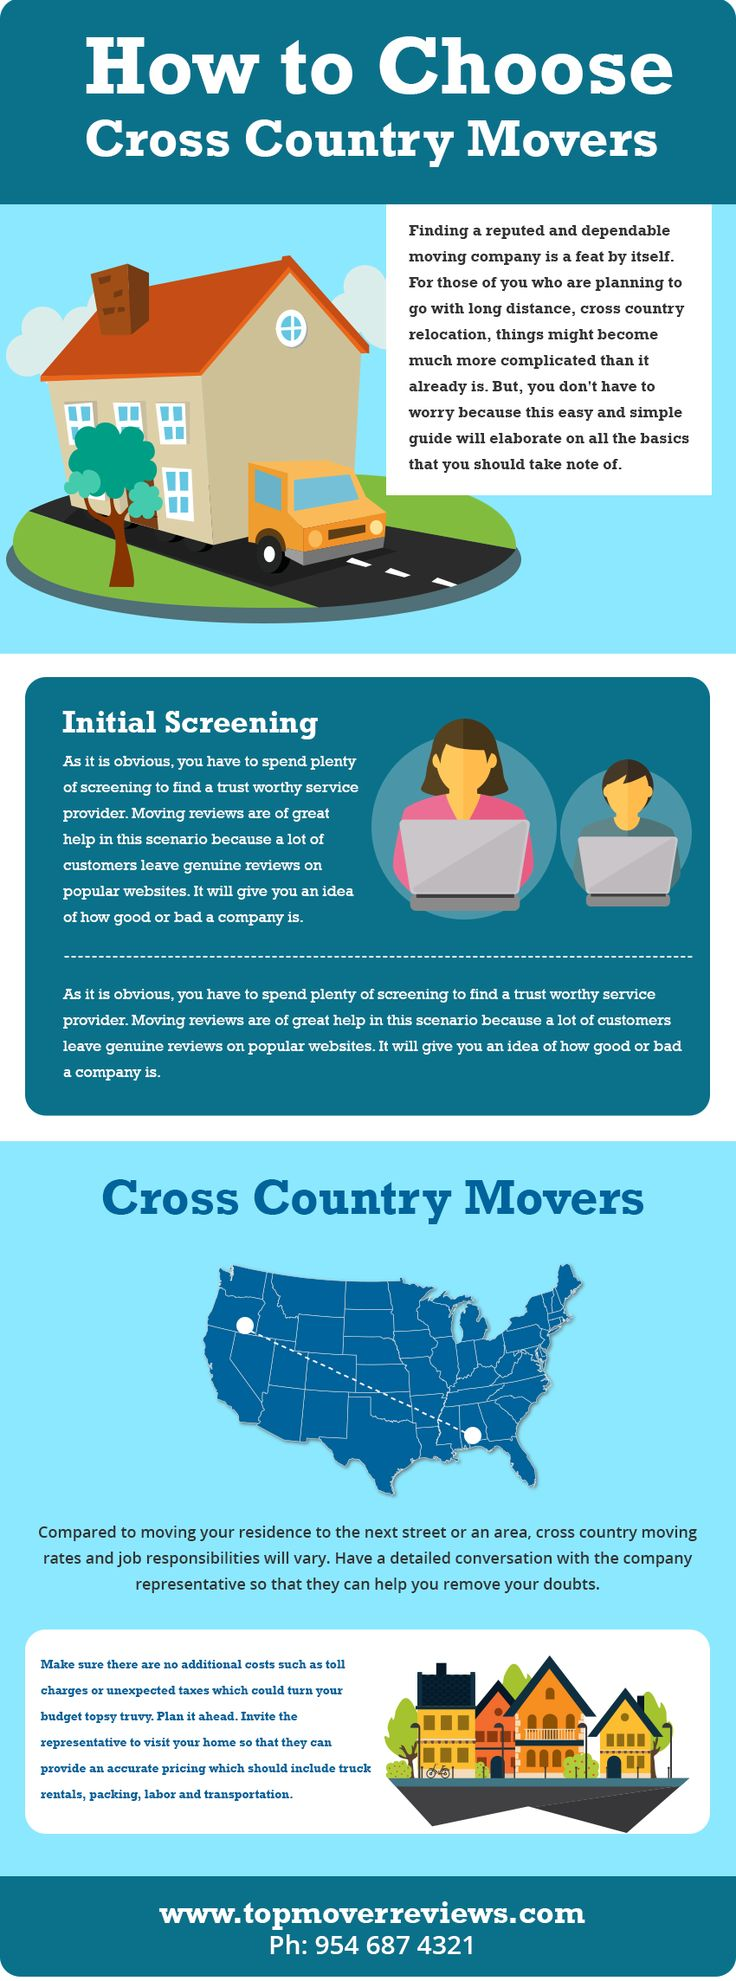 How to choose cross country movers in your city. Reading reviews on movers is the best way to find cross country moving company for your moving needs. http://topmoverreviews.com/how-to-choose-cross-country-movers